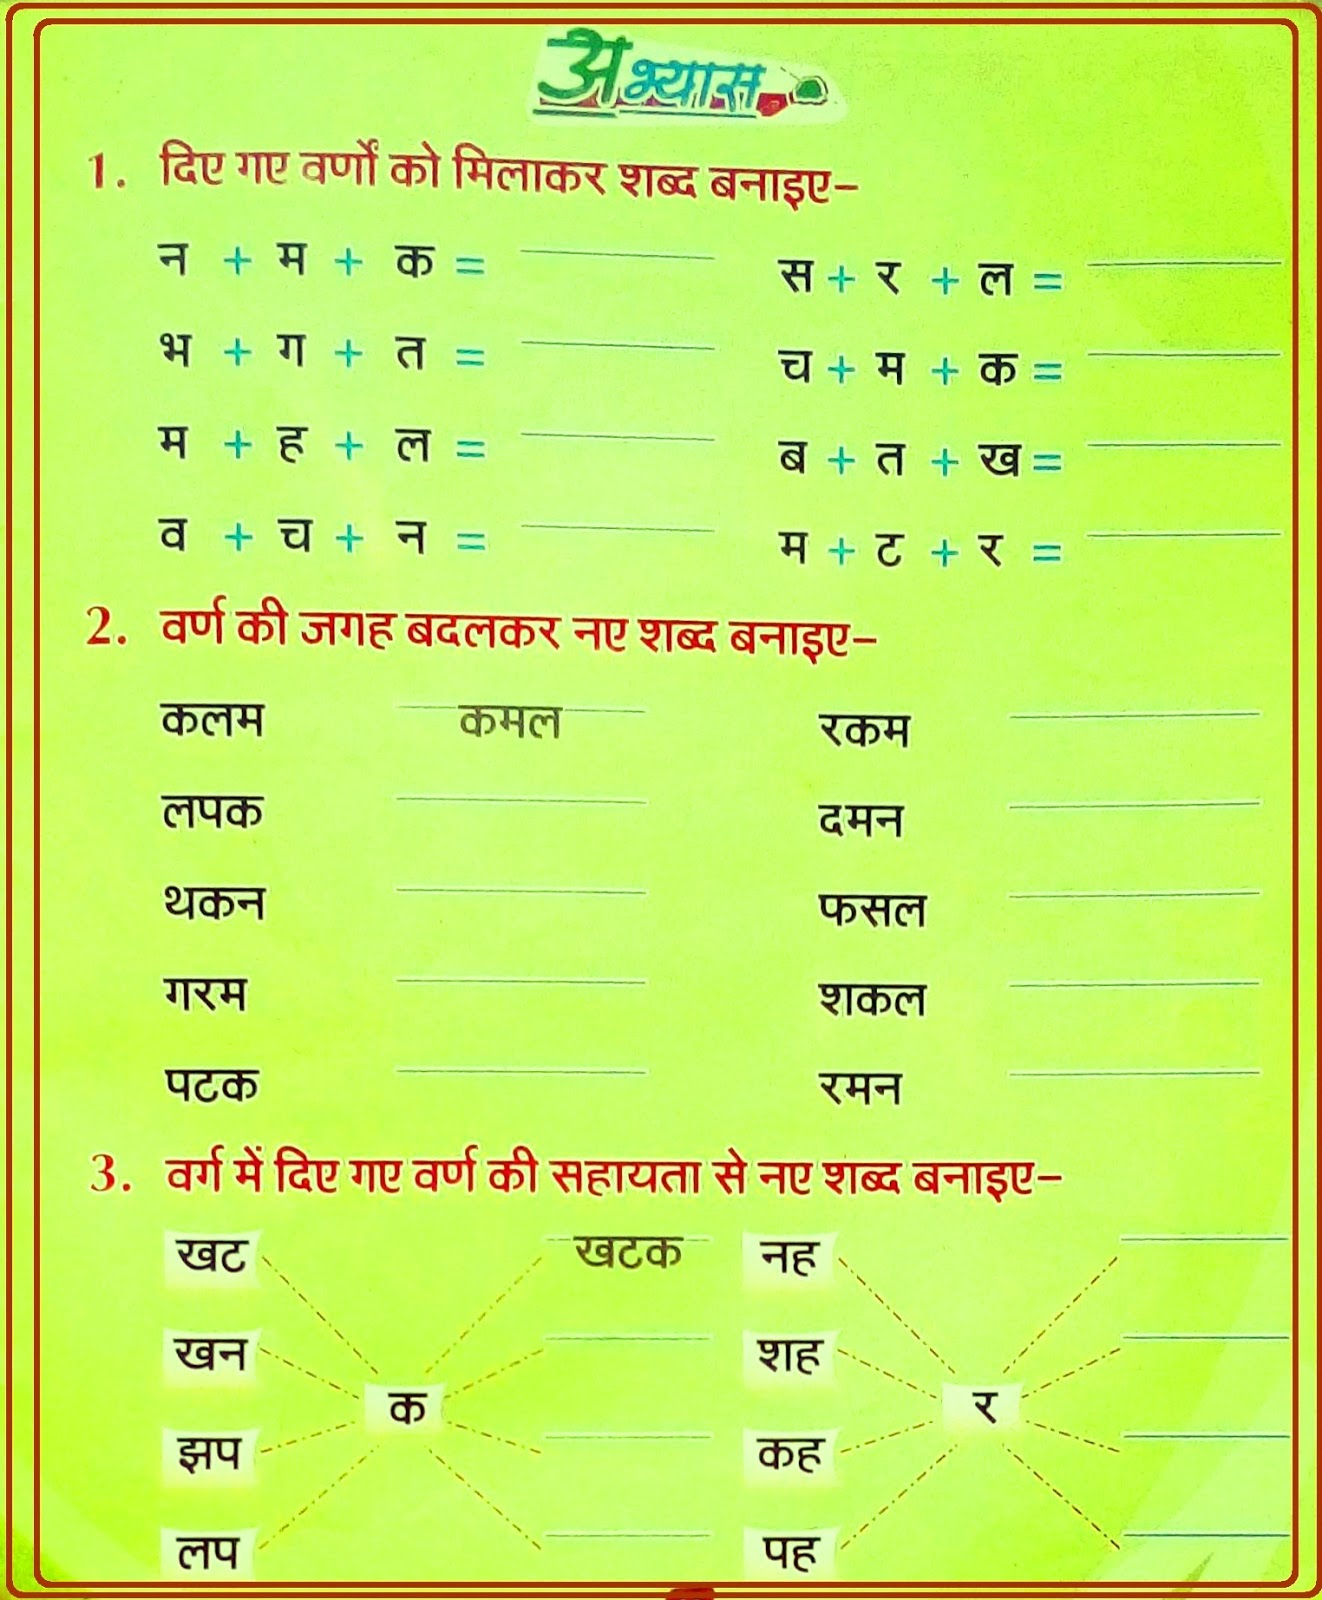 medium resolution of Primary 1 Hindi Worksheets   Printable Worksheets and Activities for  Teachers